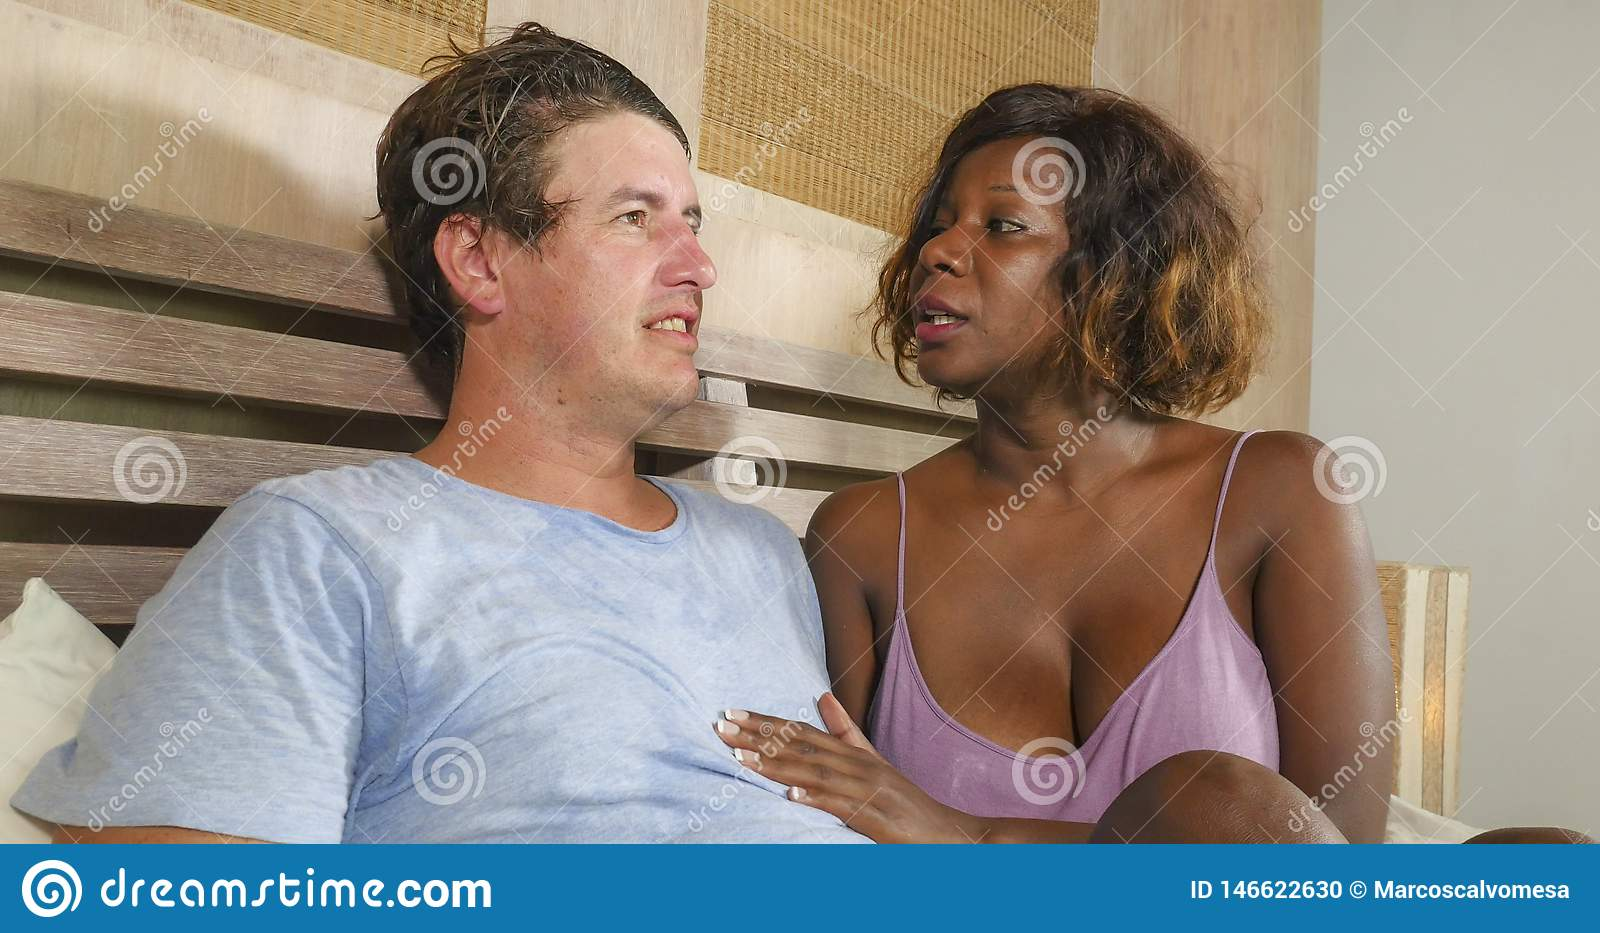 Mixed ethnicity couple in love cuddling together at home in bed with beautiful playful black afro American woman and white